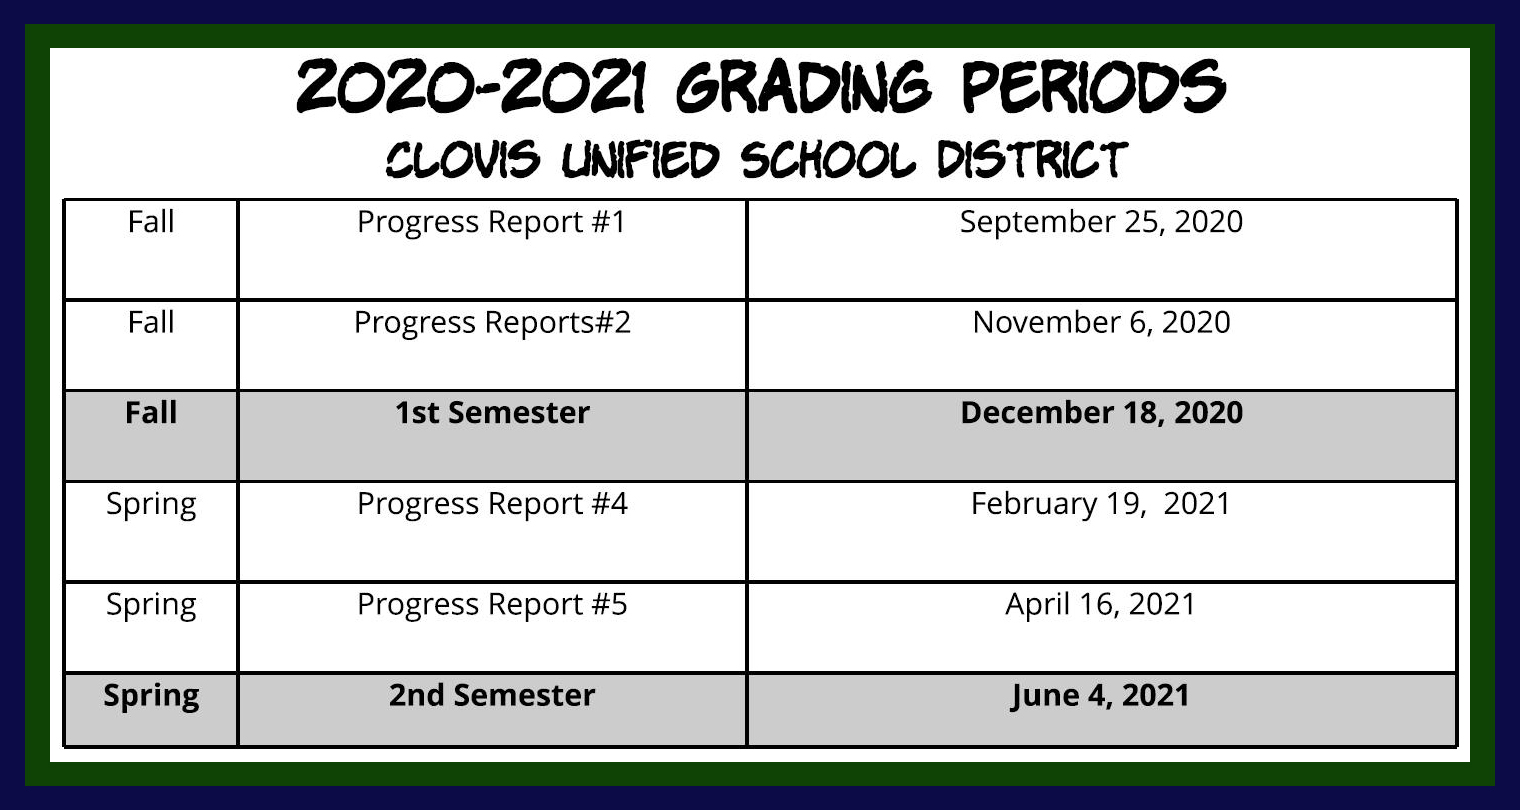 2020-2021 Grading Periods for CUSD